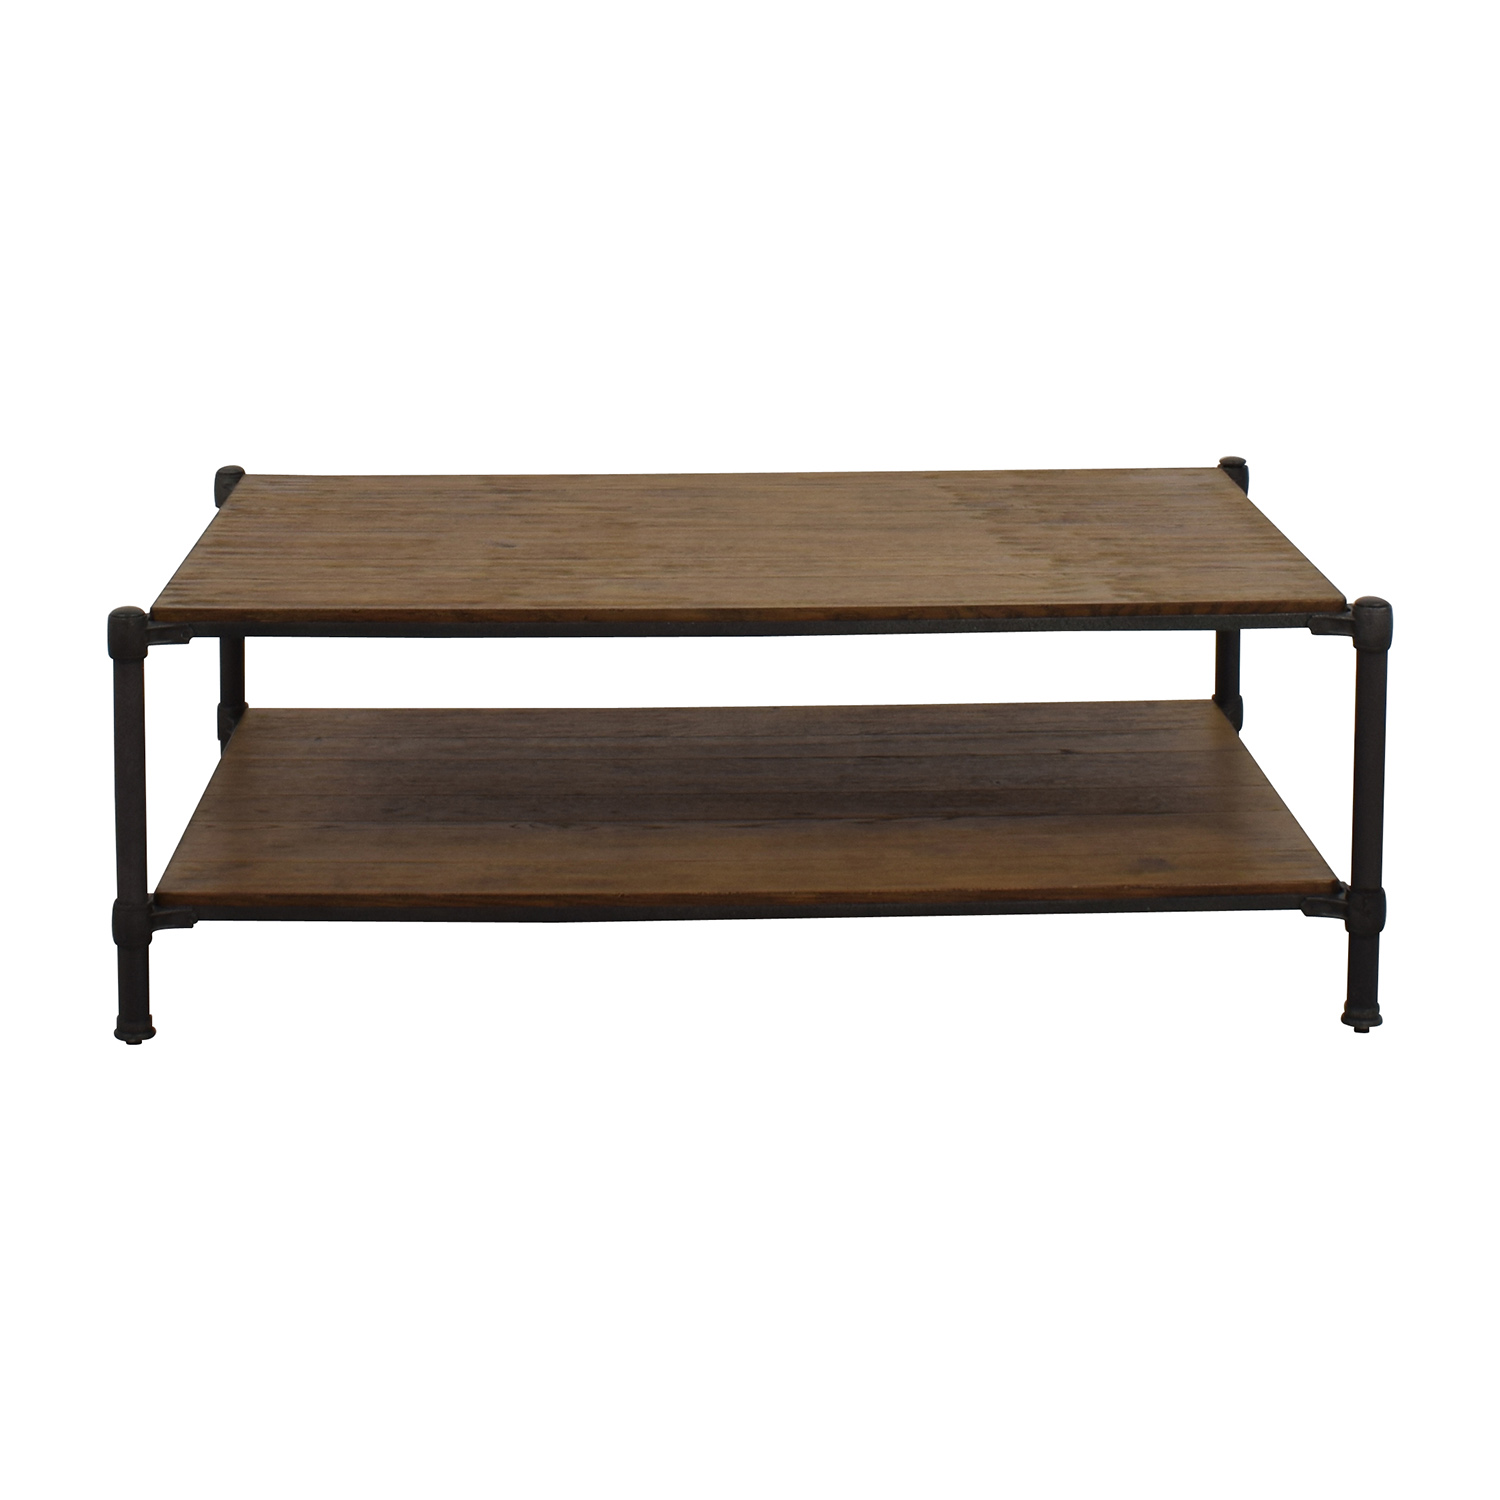 Ethan Allen Wood and Metal Coffee Table sale